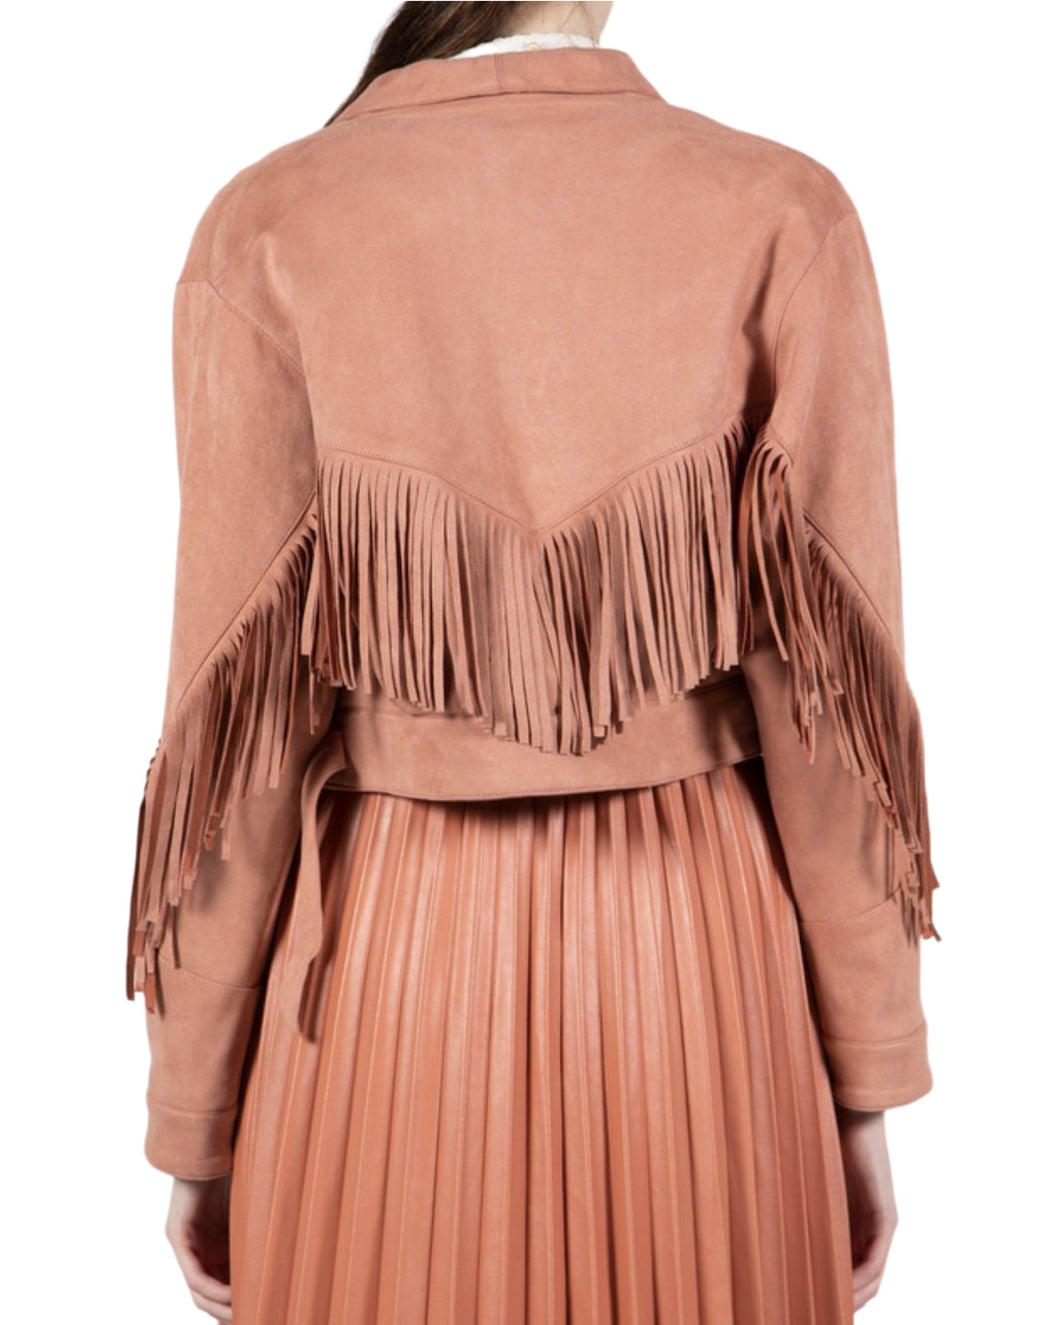 SANDY ROSE FRINGE JACKET